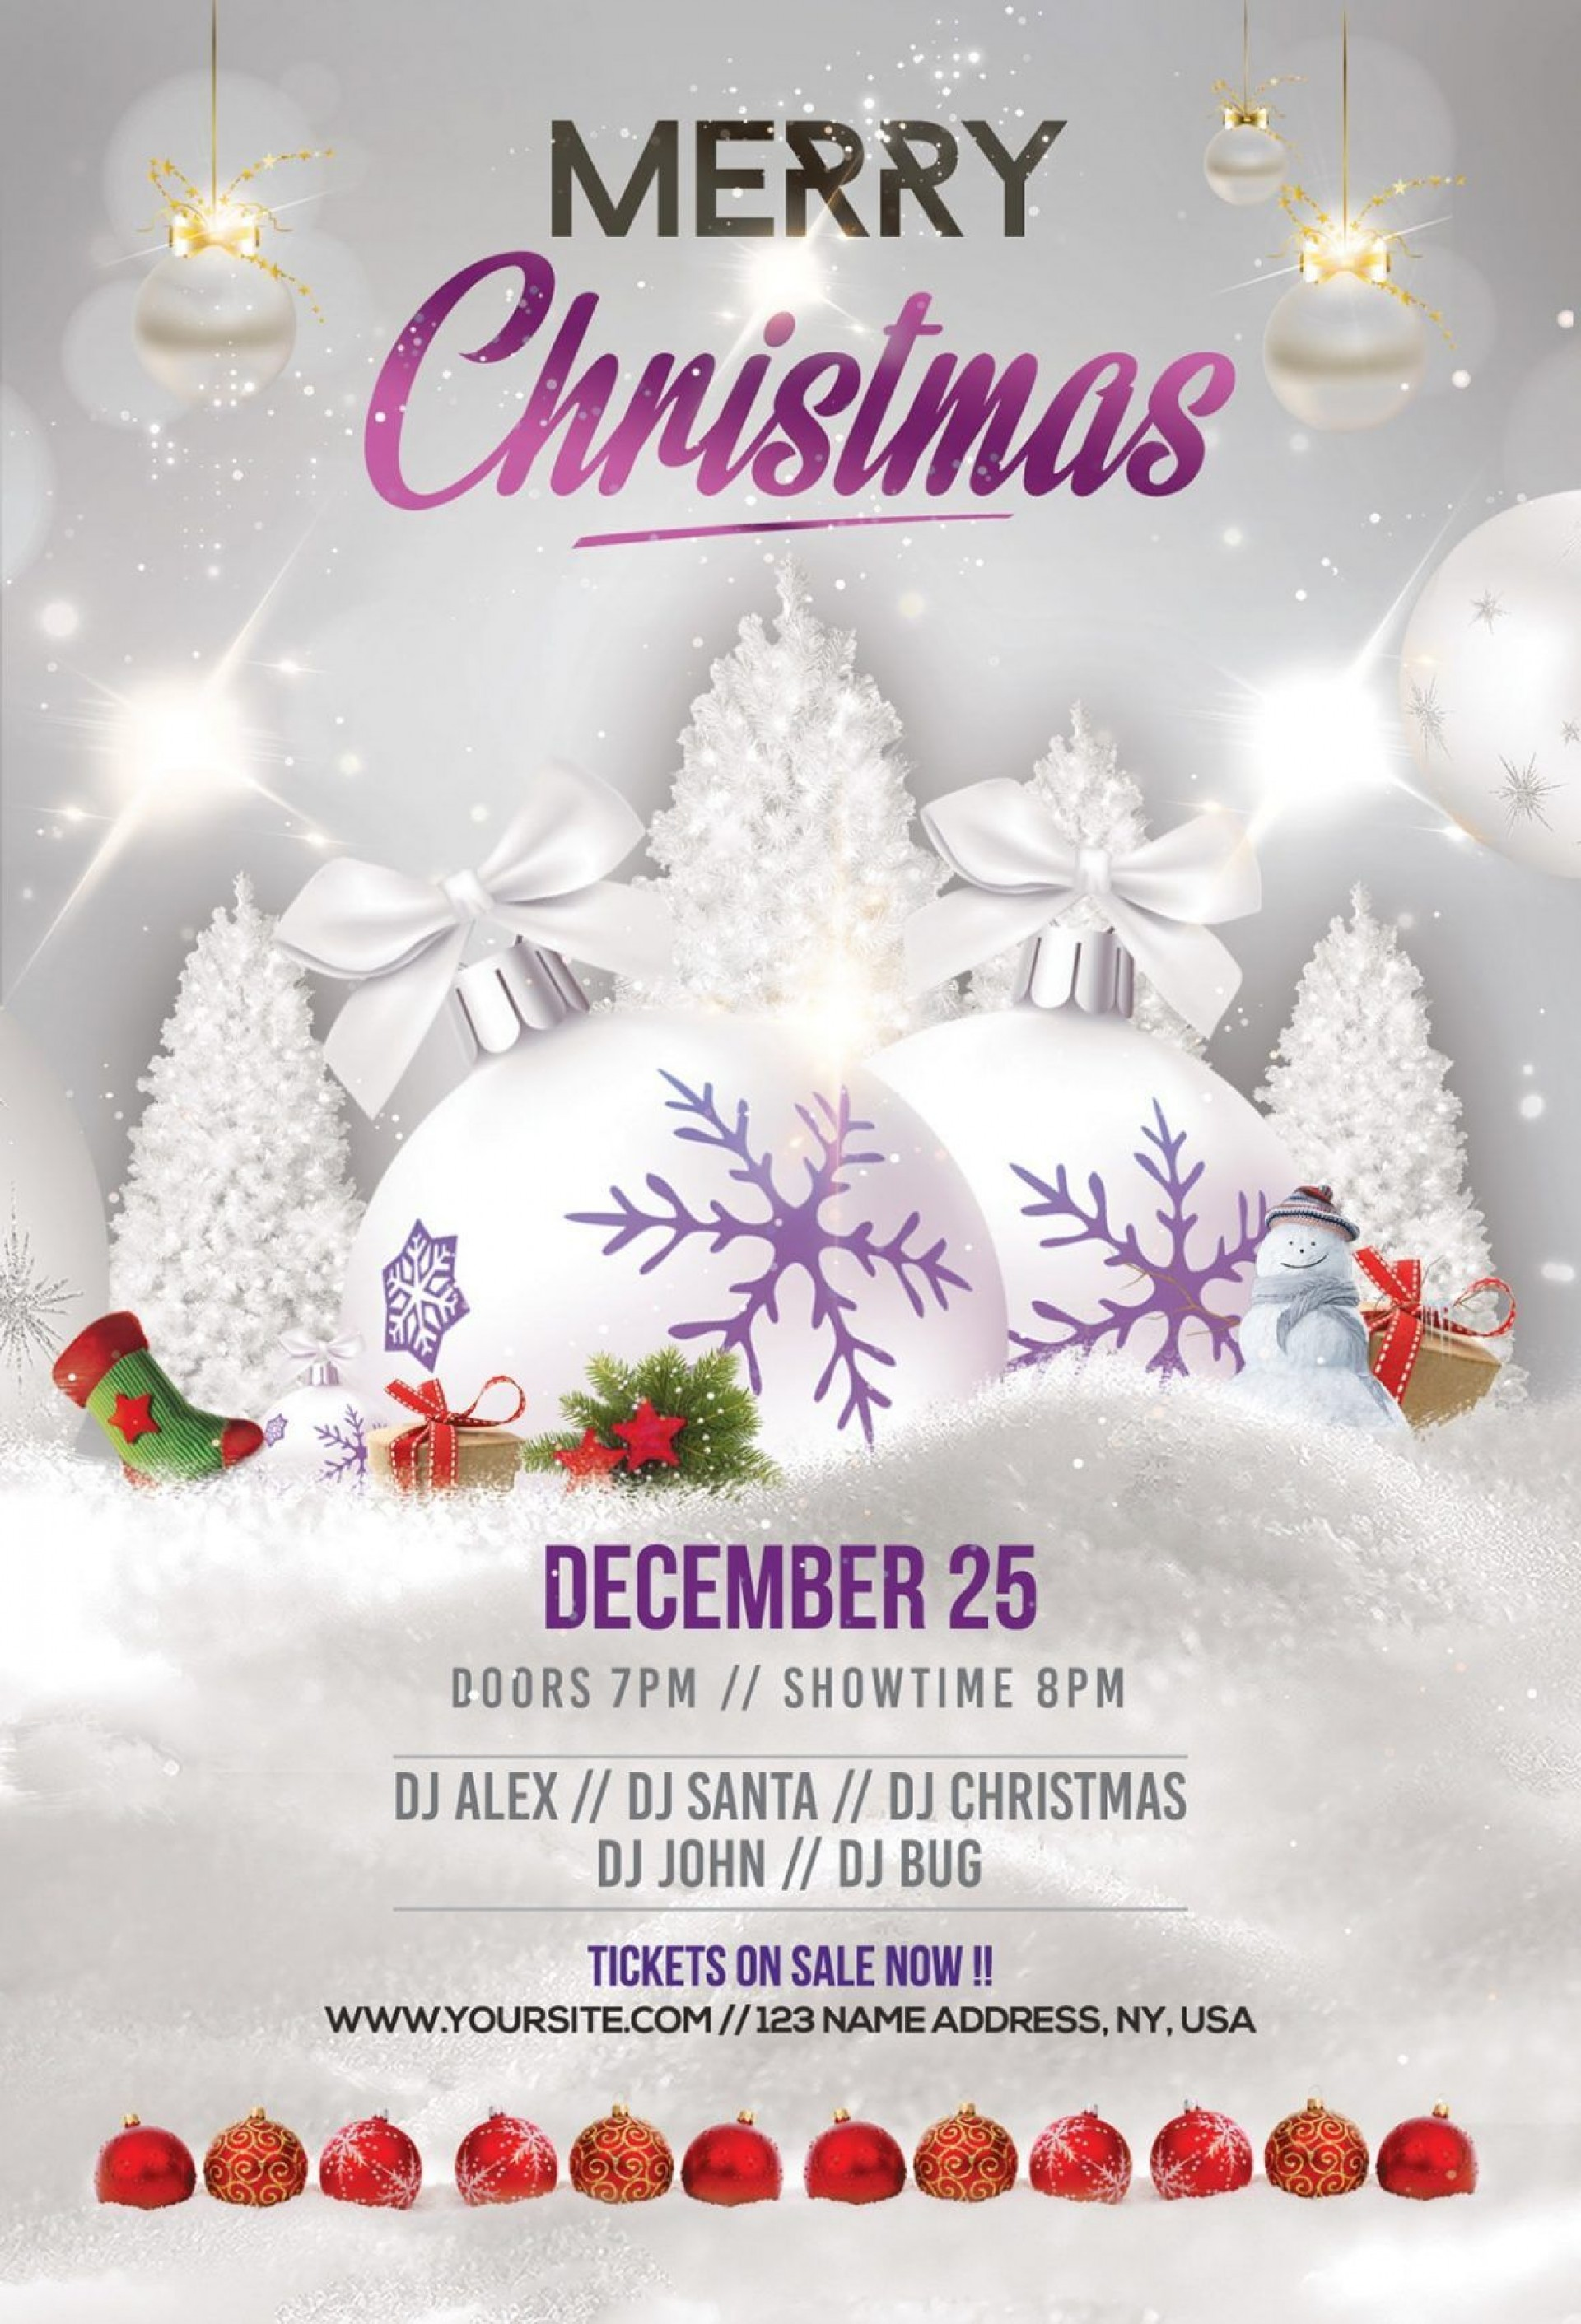 005 Striking Free Christma Flyer Template Example  Templates Holiday Invitation Microsoft Word Psd1920